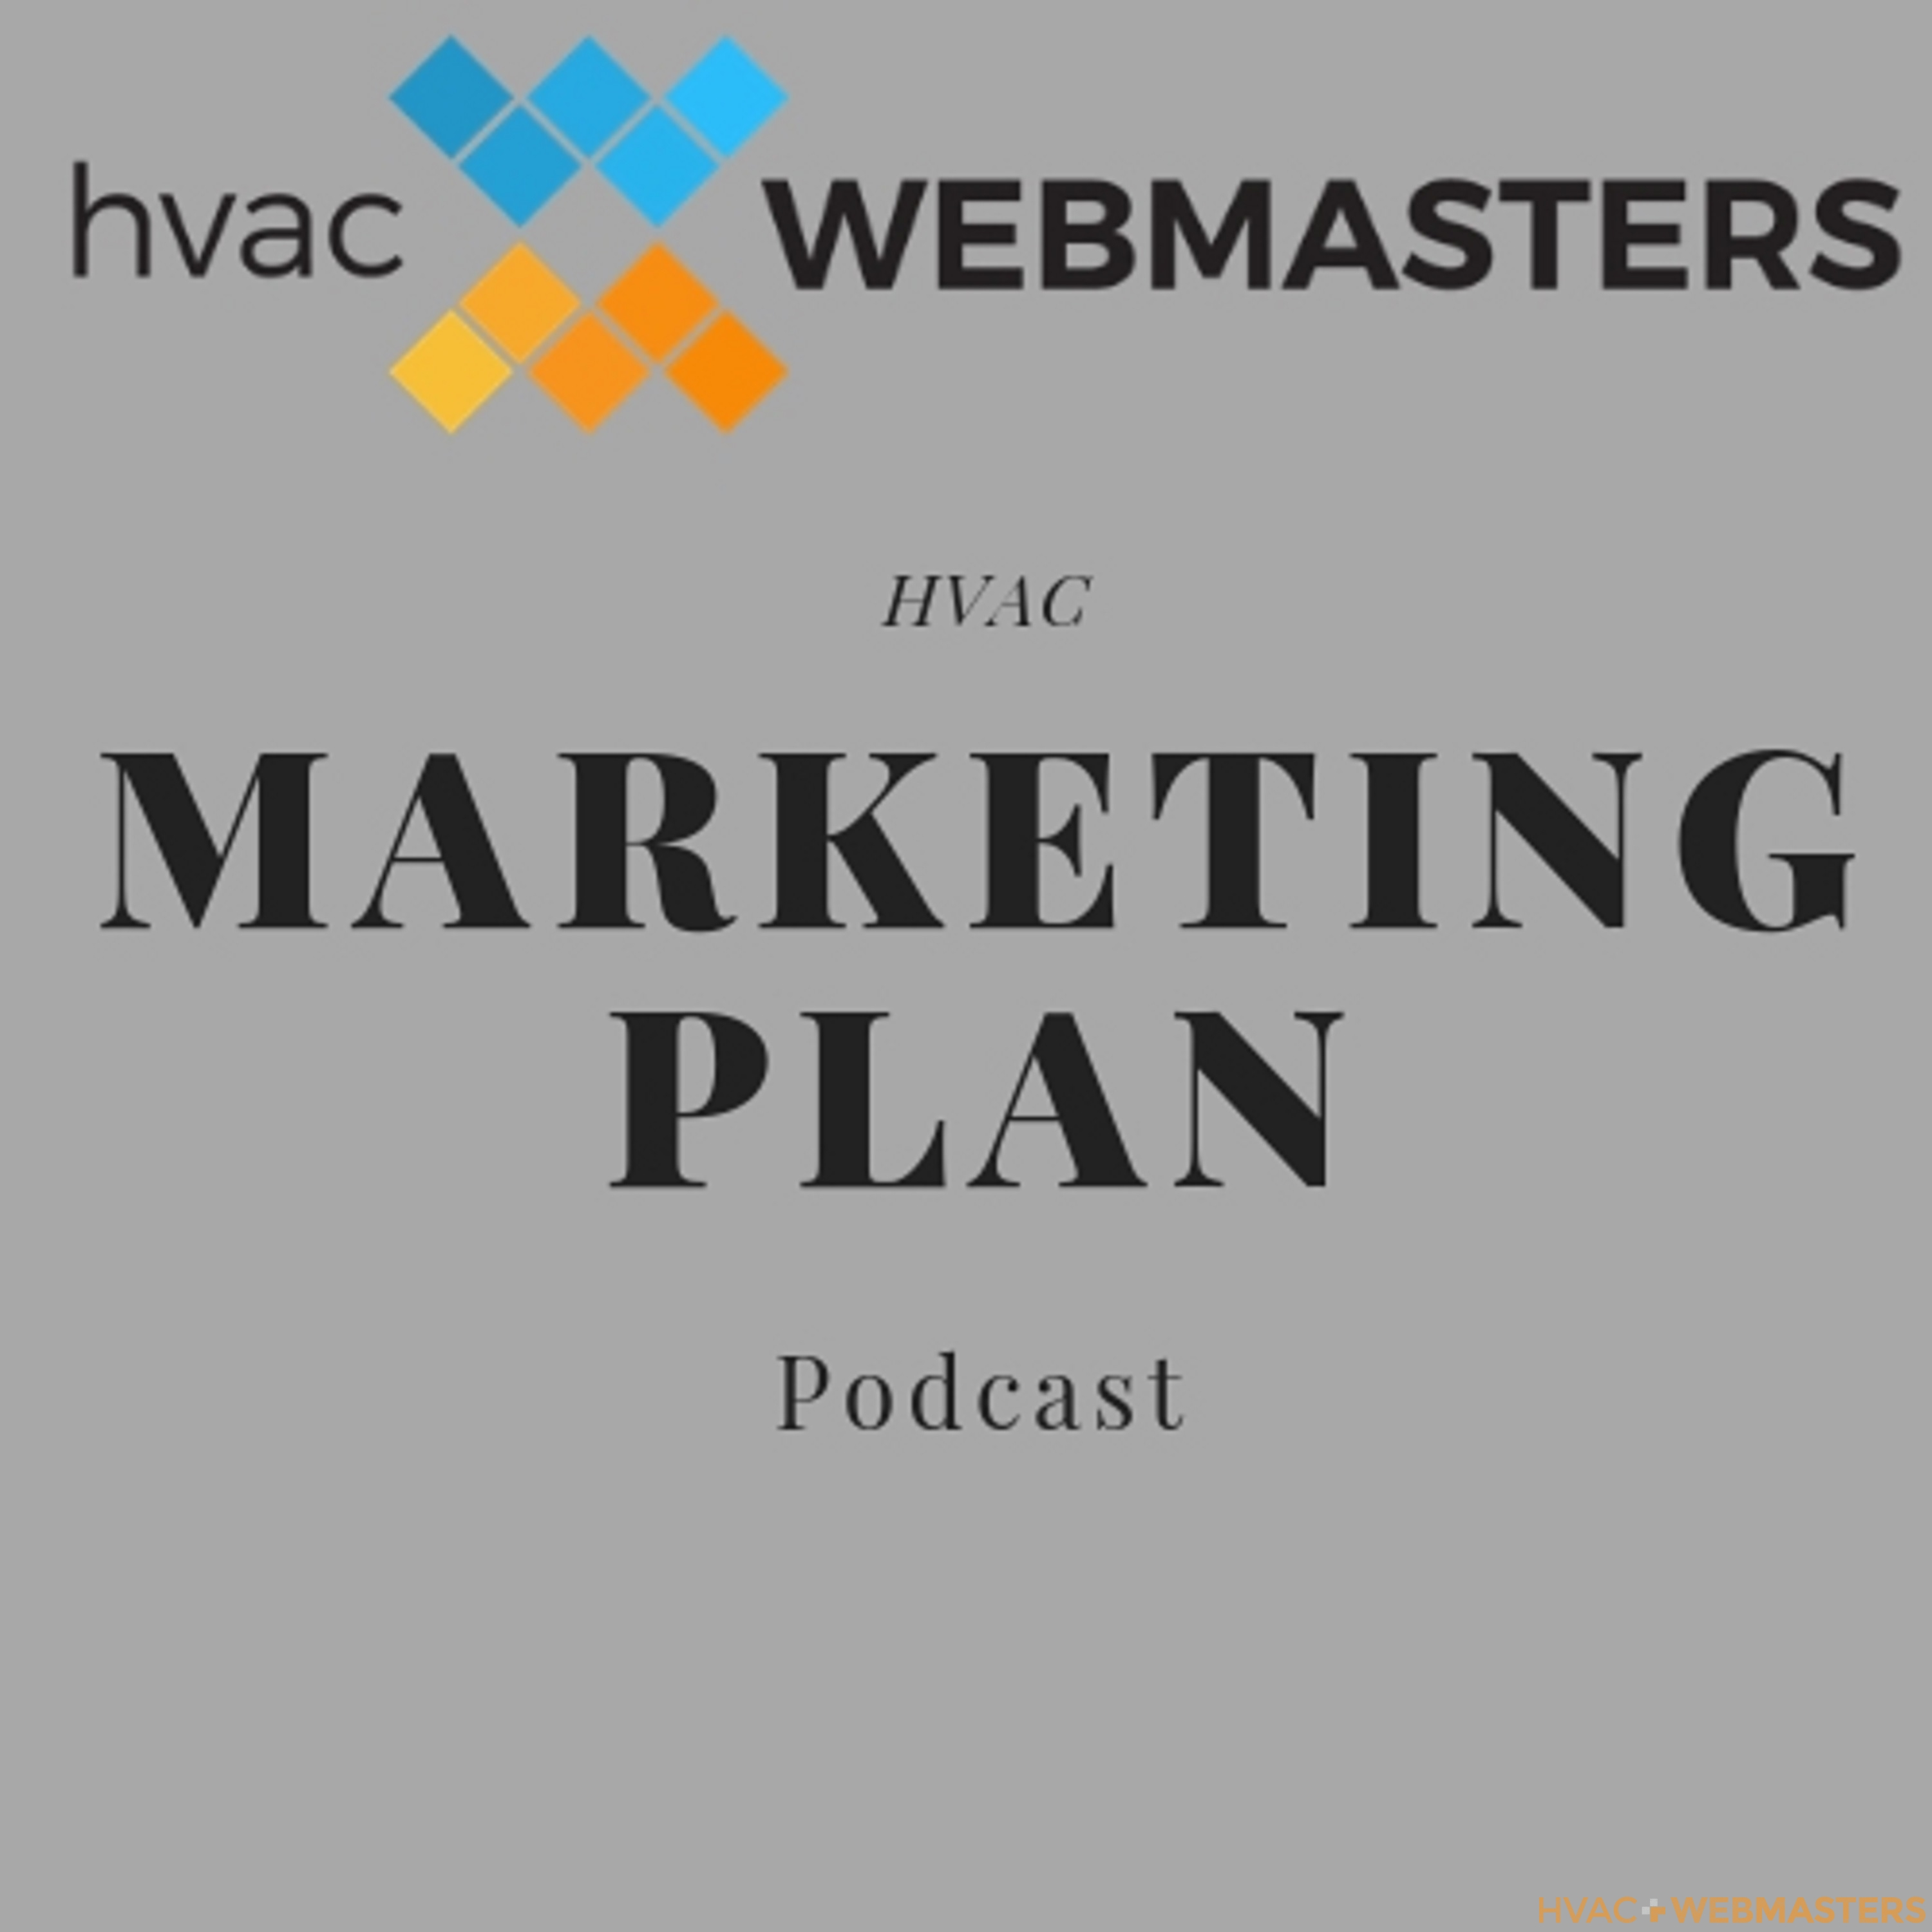 Podcast:Organic SEO Is Your 24/7 Employee For Your HVAC